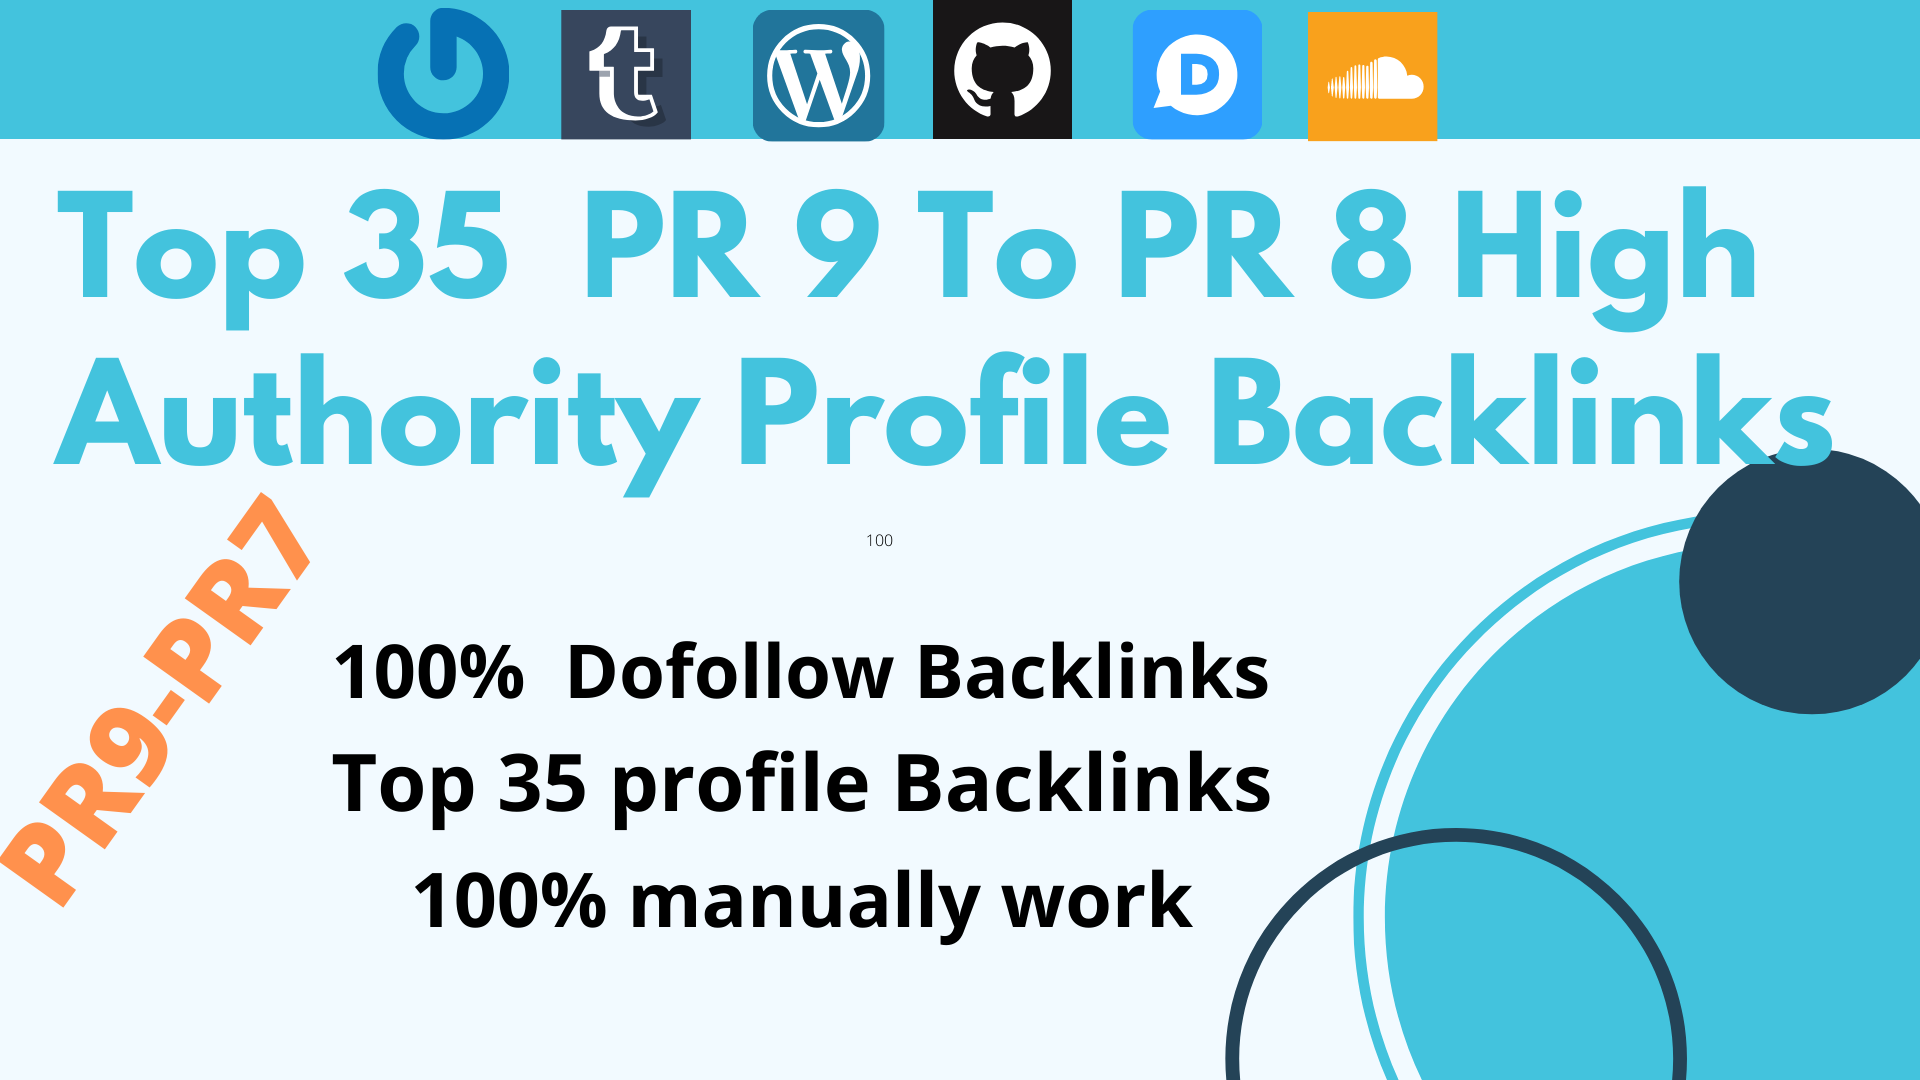 Give you Top 35 high authority do-follow PR9-PR7 profile backlinks